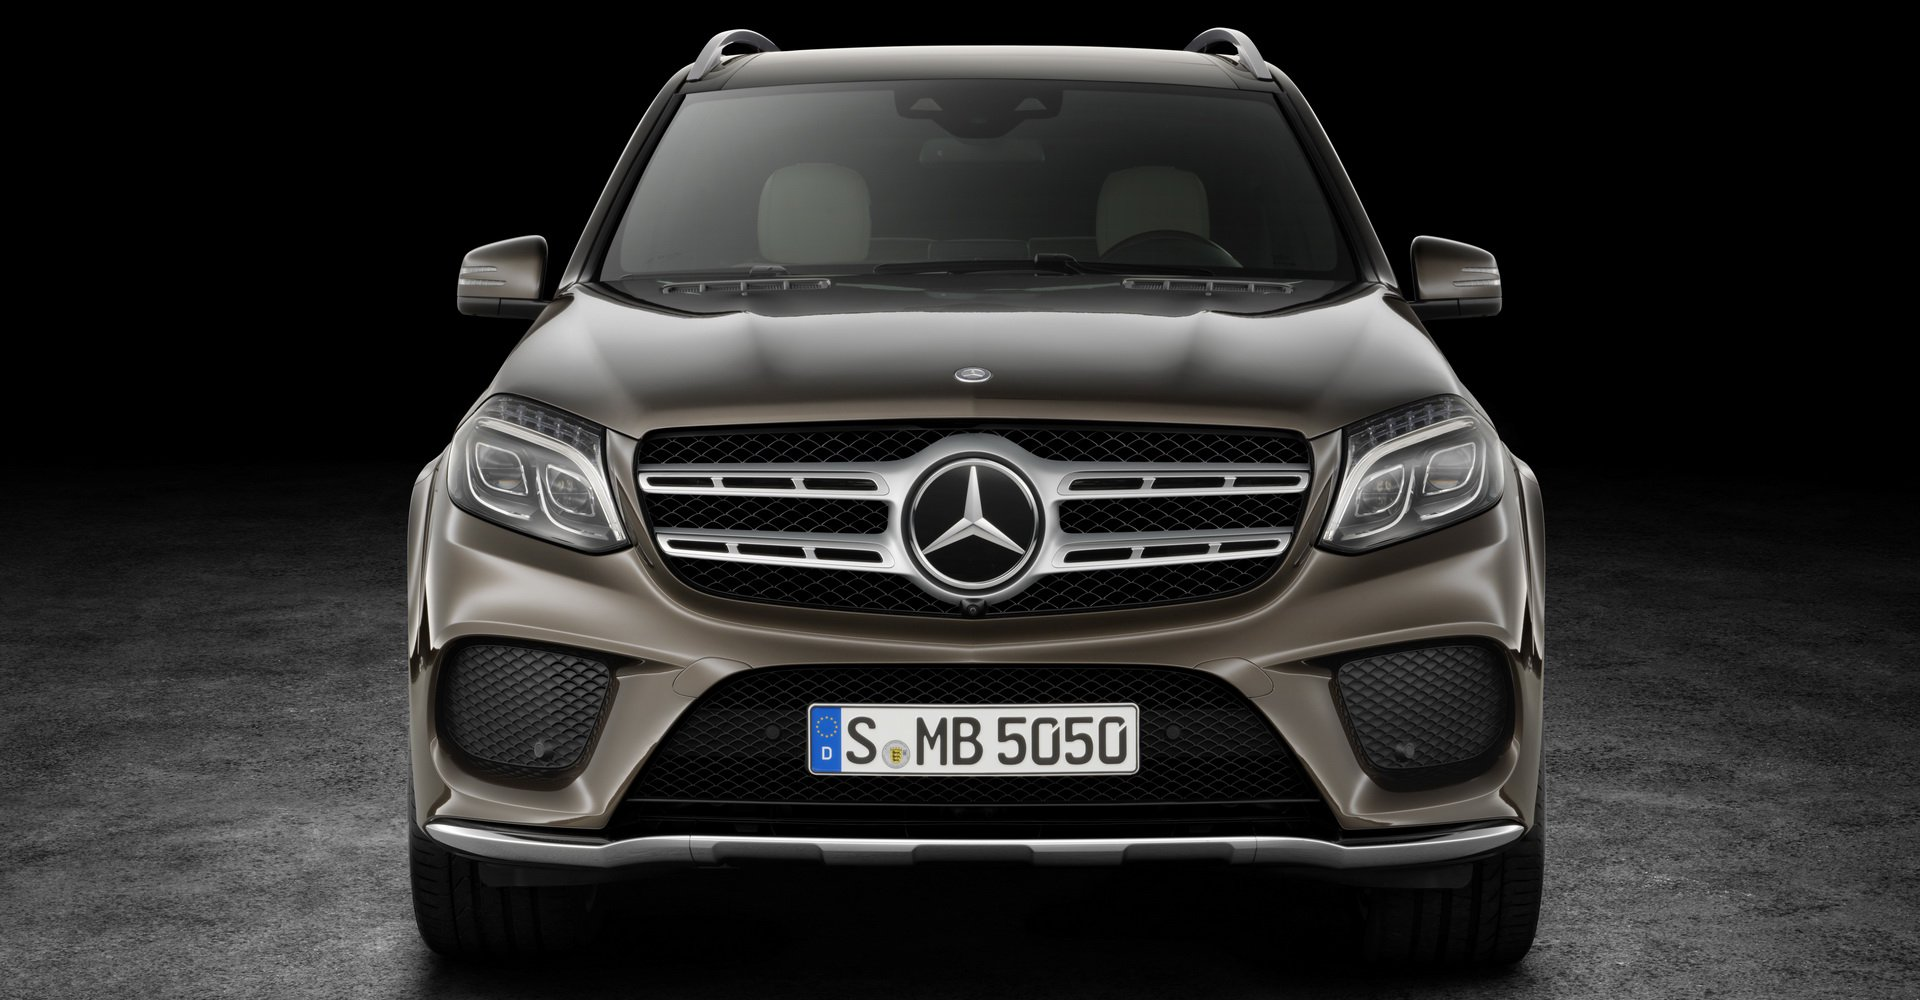 so-sanh-bmw-x7-vs-mercedes-gls-8.jpg